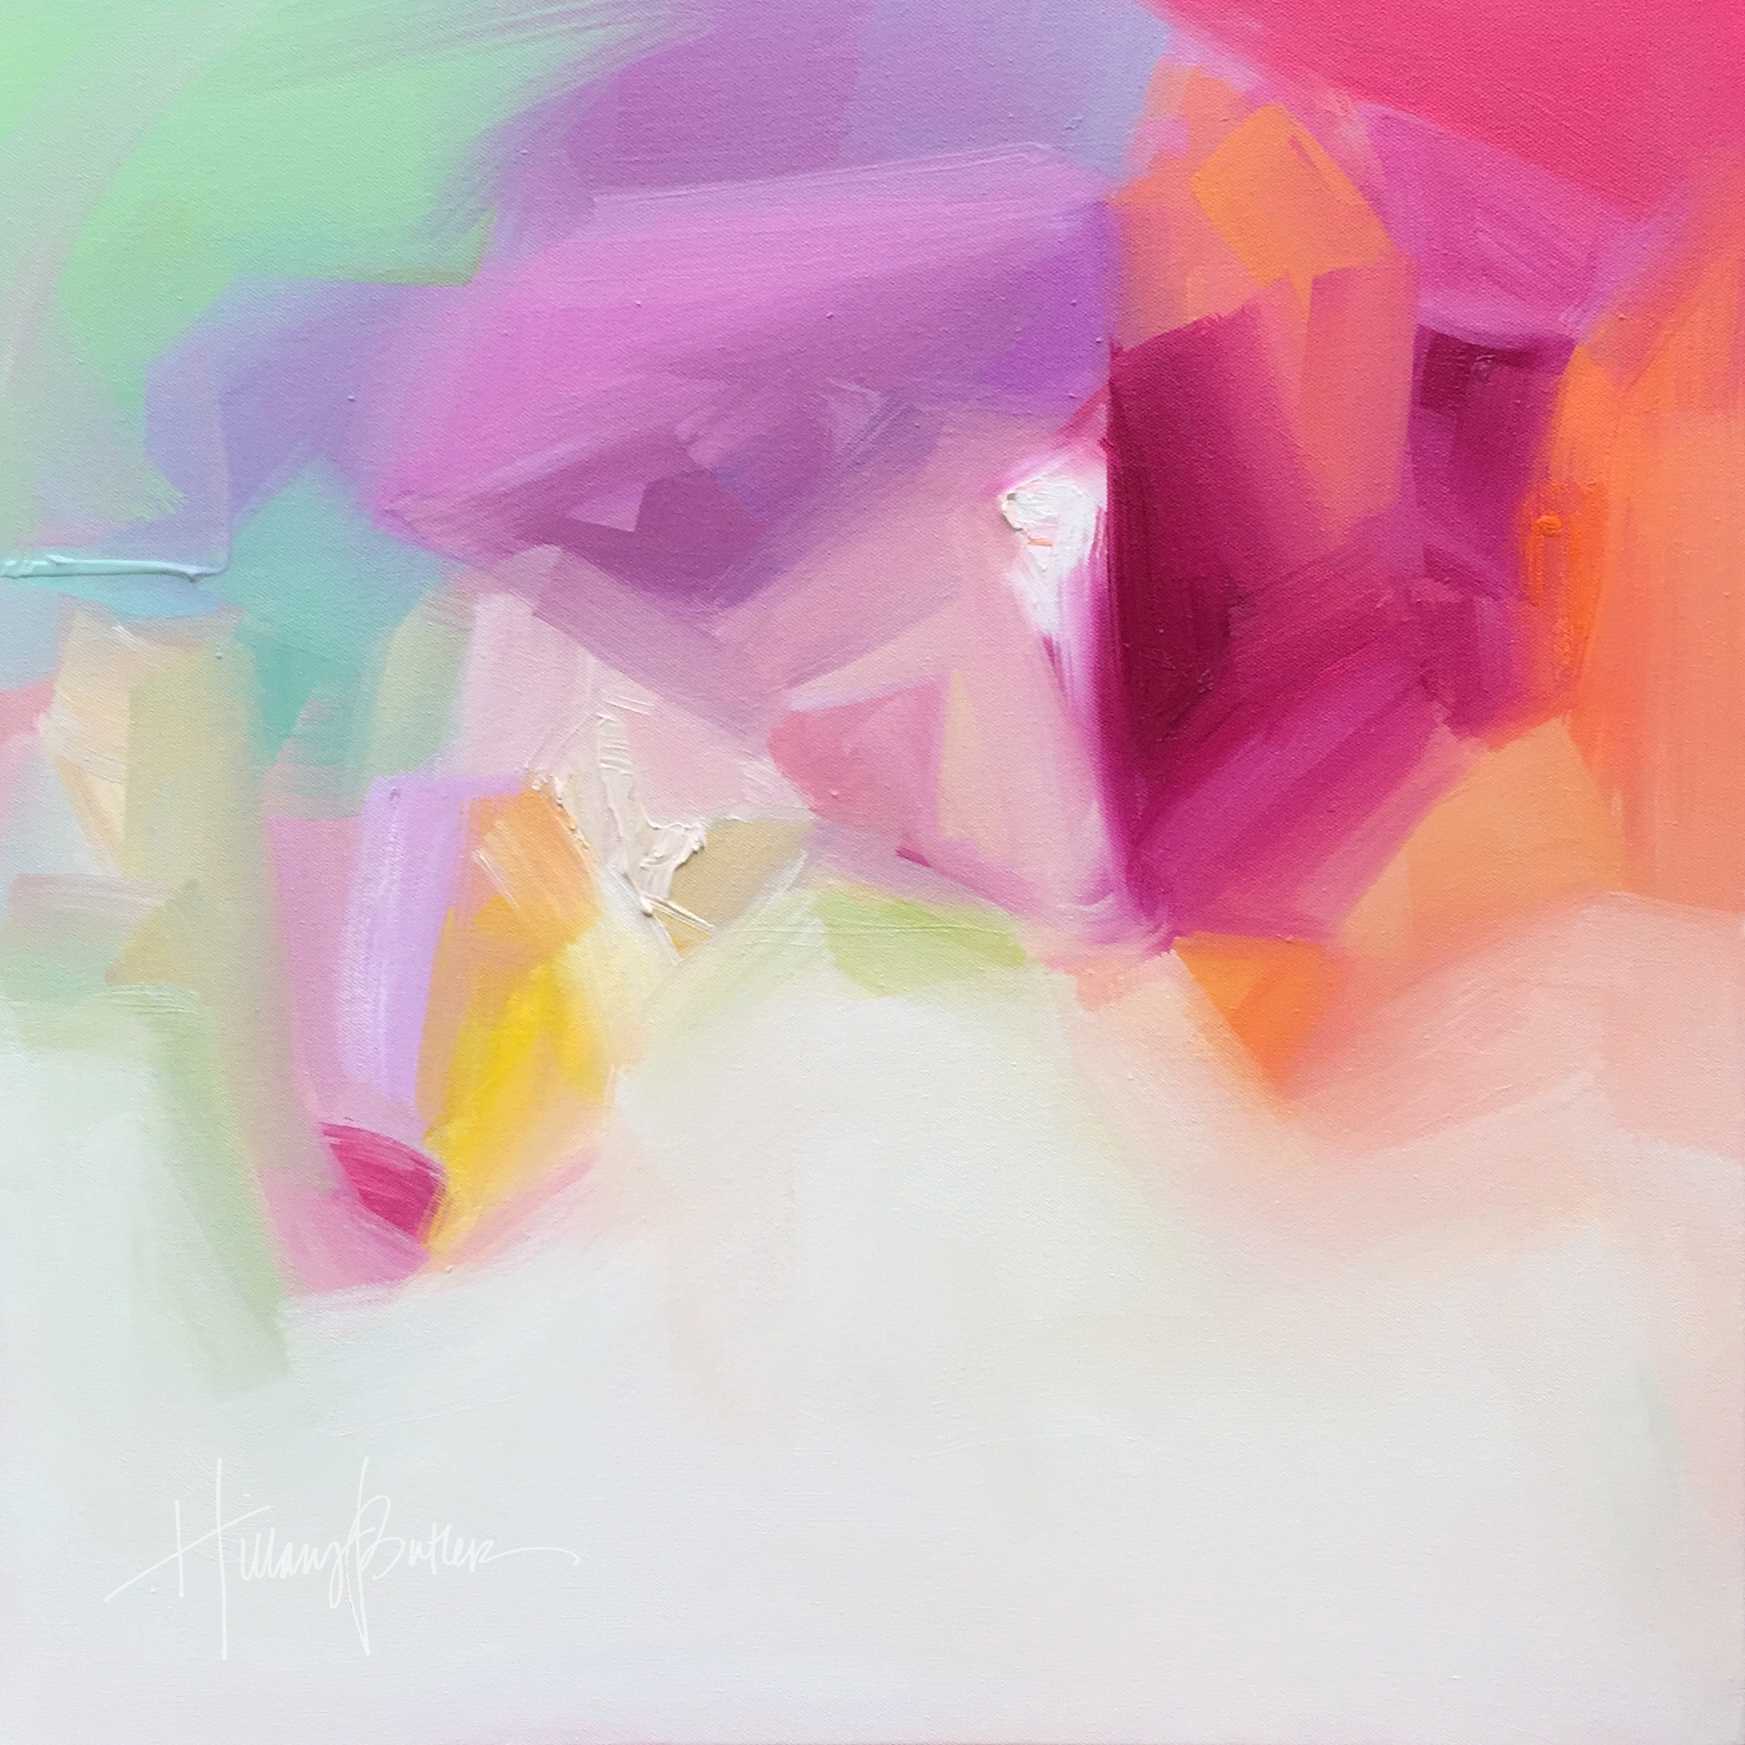 hillary.butler.art.abstract.painting.bright.pink.pinkaliciousness copy.jpg